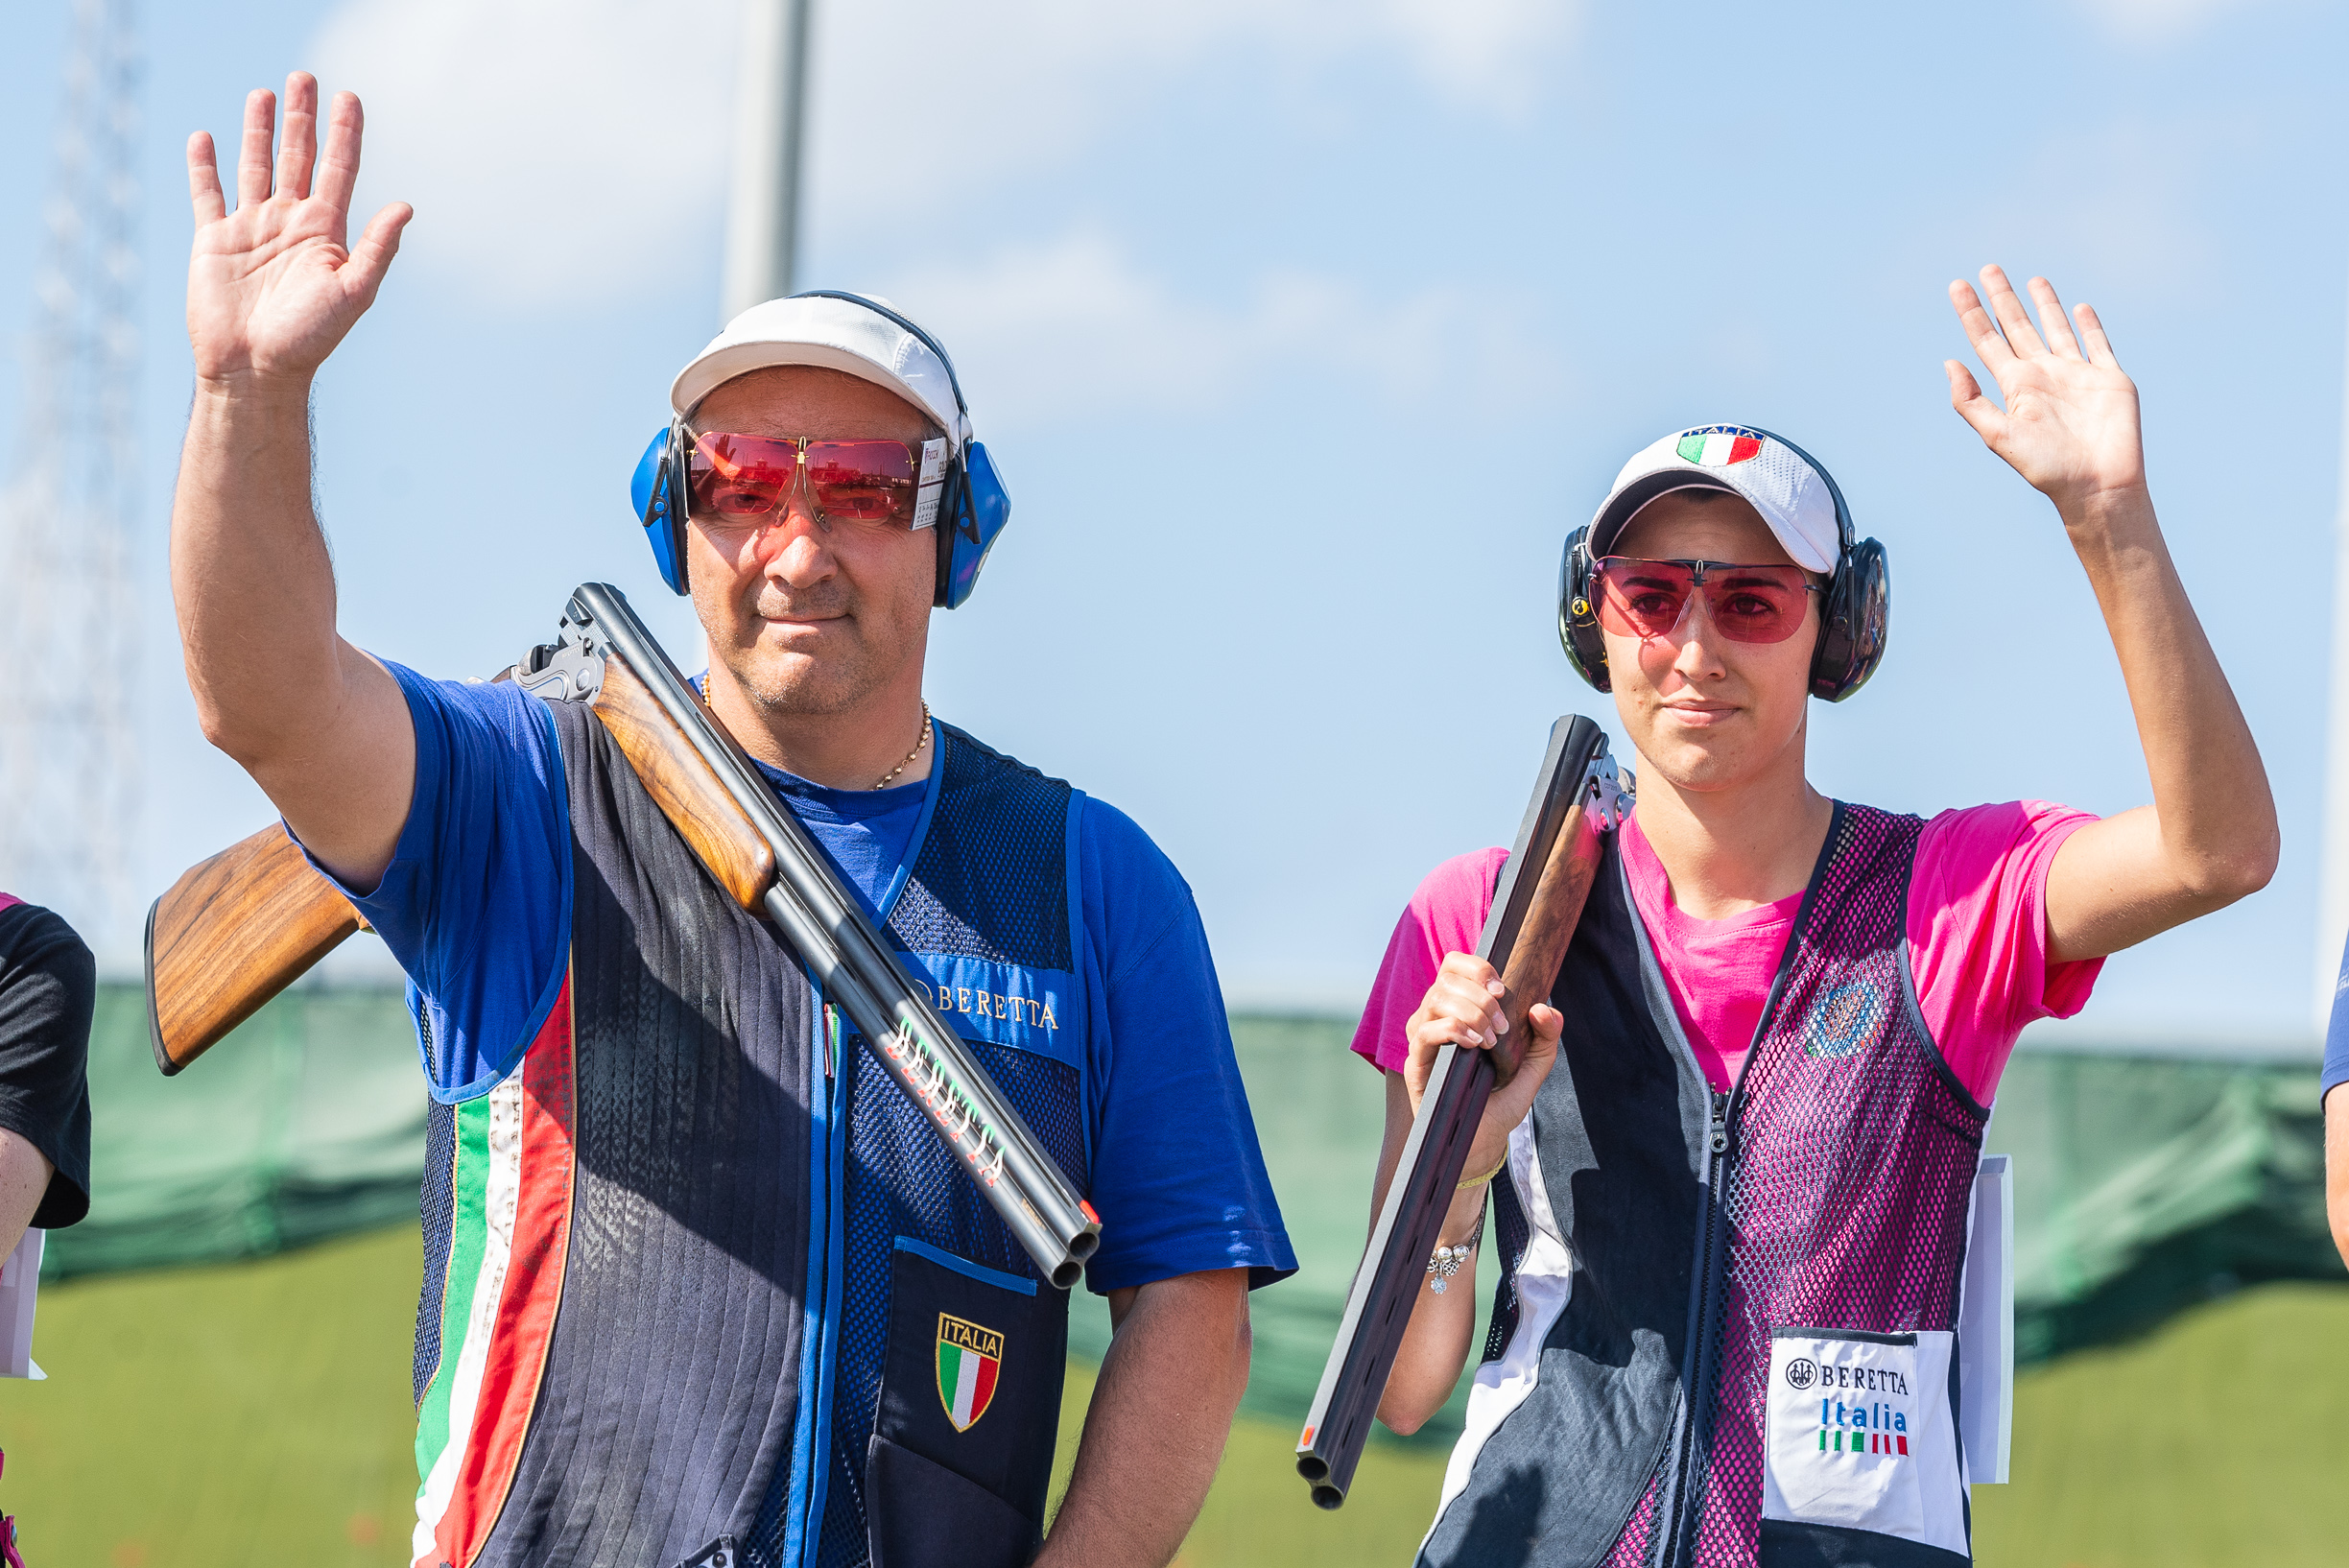 FIOCCHI TEAM WINS A BUNCH OF MEDALS AT THE EUROPEAN CHAMPIONSHIP IN LEOBERSDORF